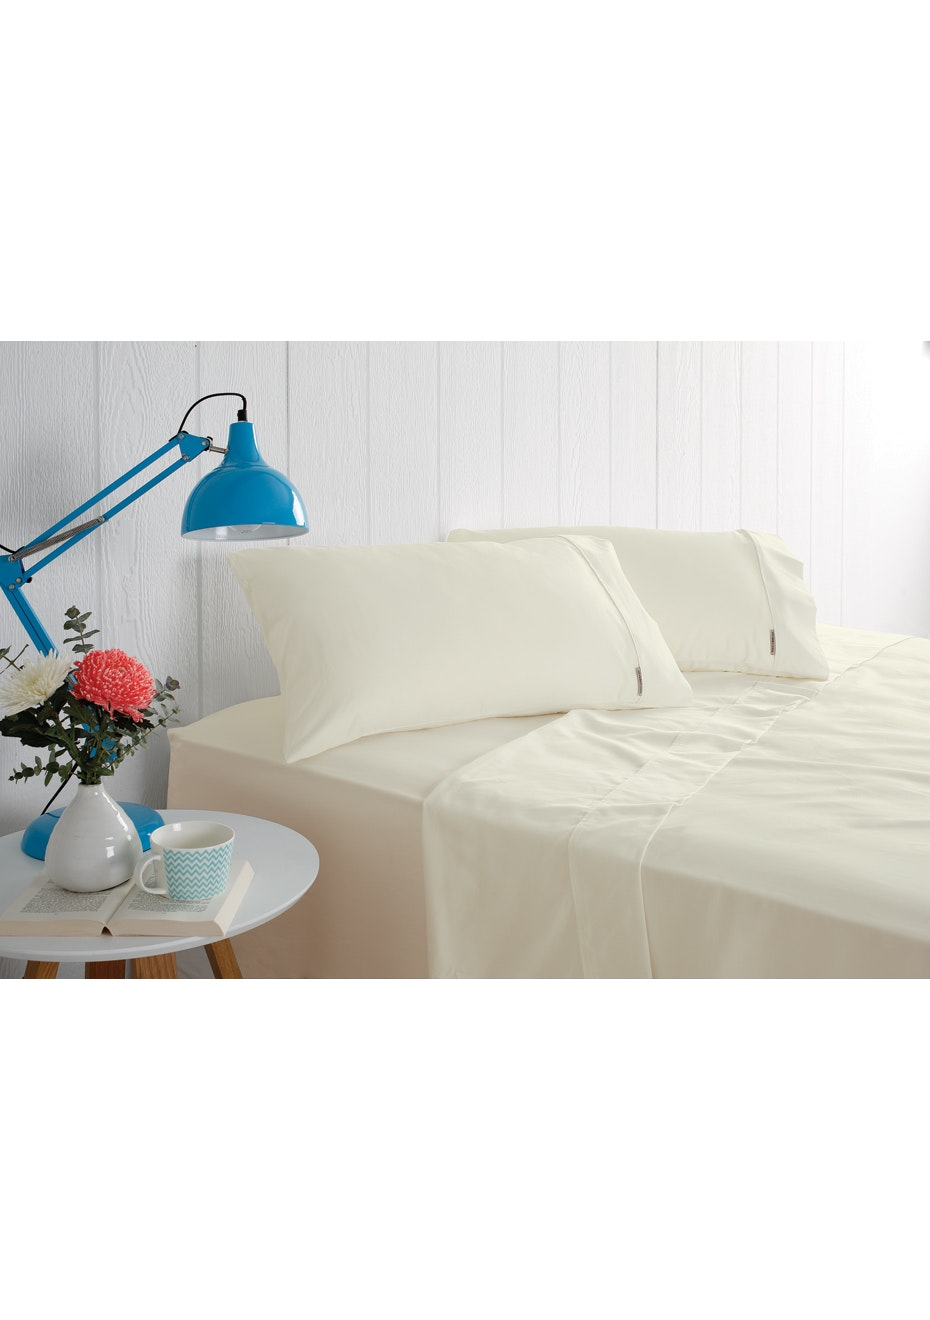 Odyssey Living 1000 Thread Count – Cotton Rich Sheet Sets - Ivory - Queen Bed